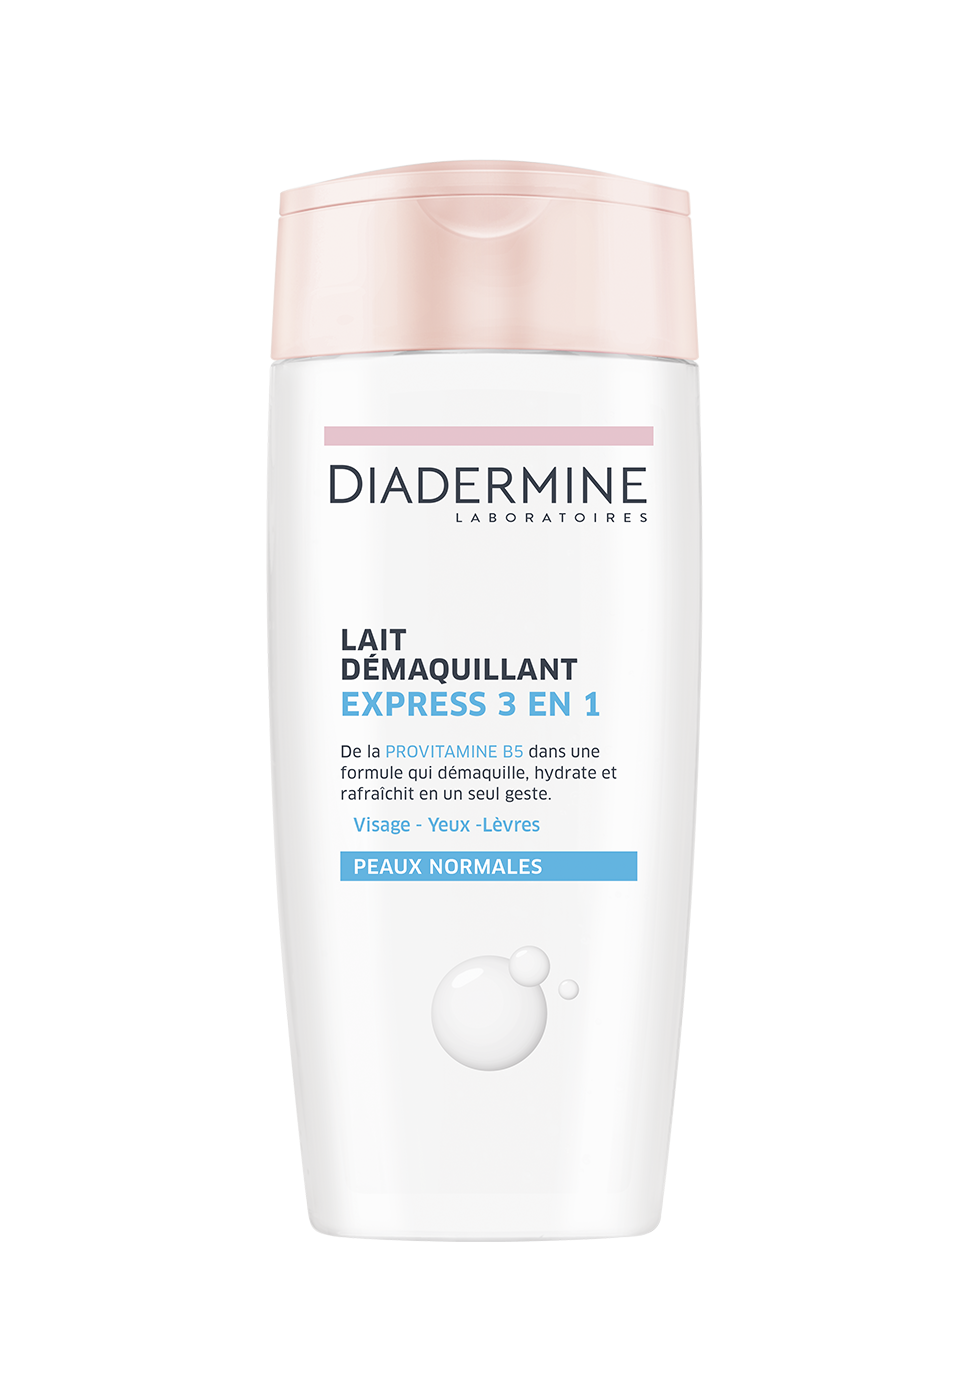 diadermine_essentiels_lait_demaquillant_express_3_en1